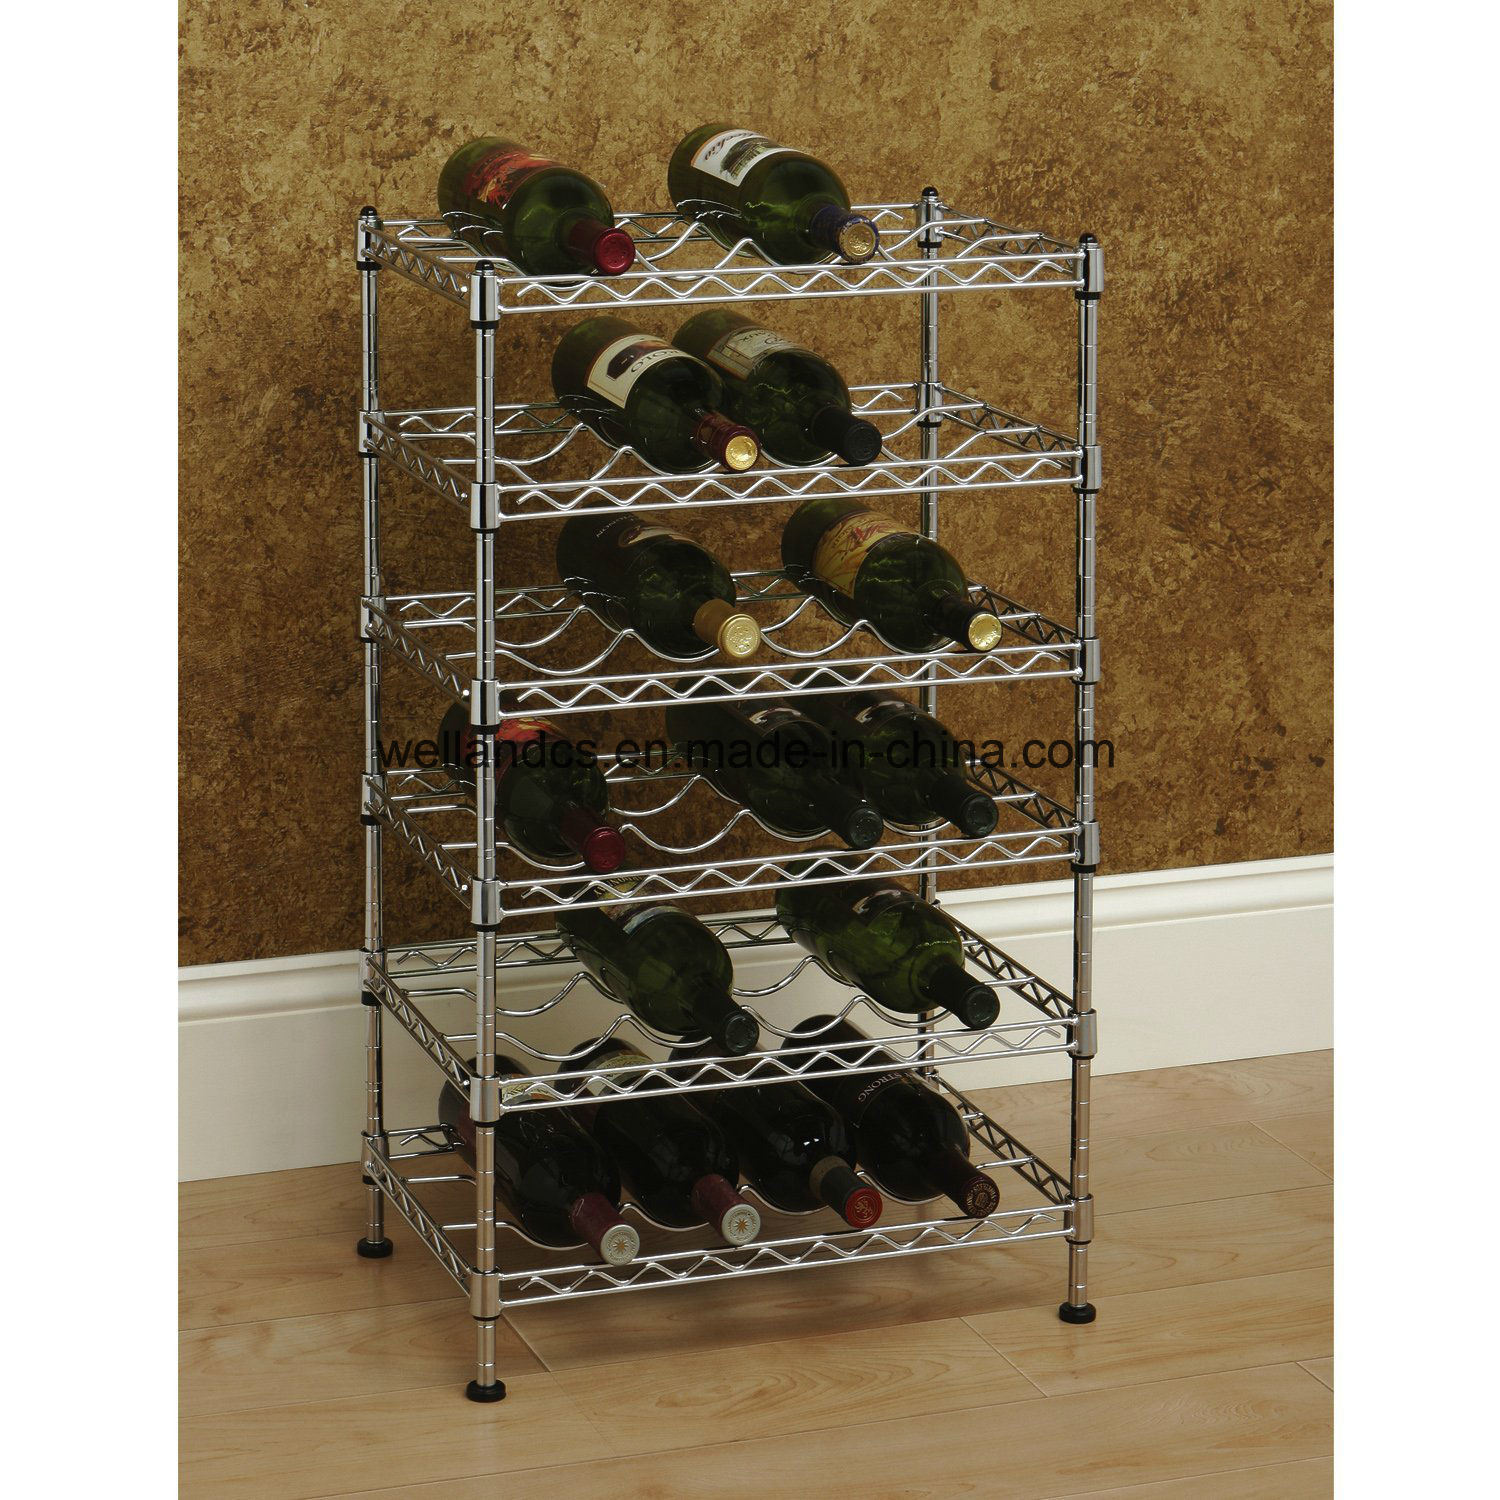 Wine Holder Stand Hot Item Multi Level Adjustable Chrome Metal Wine Rack Bottle Stand Holder